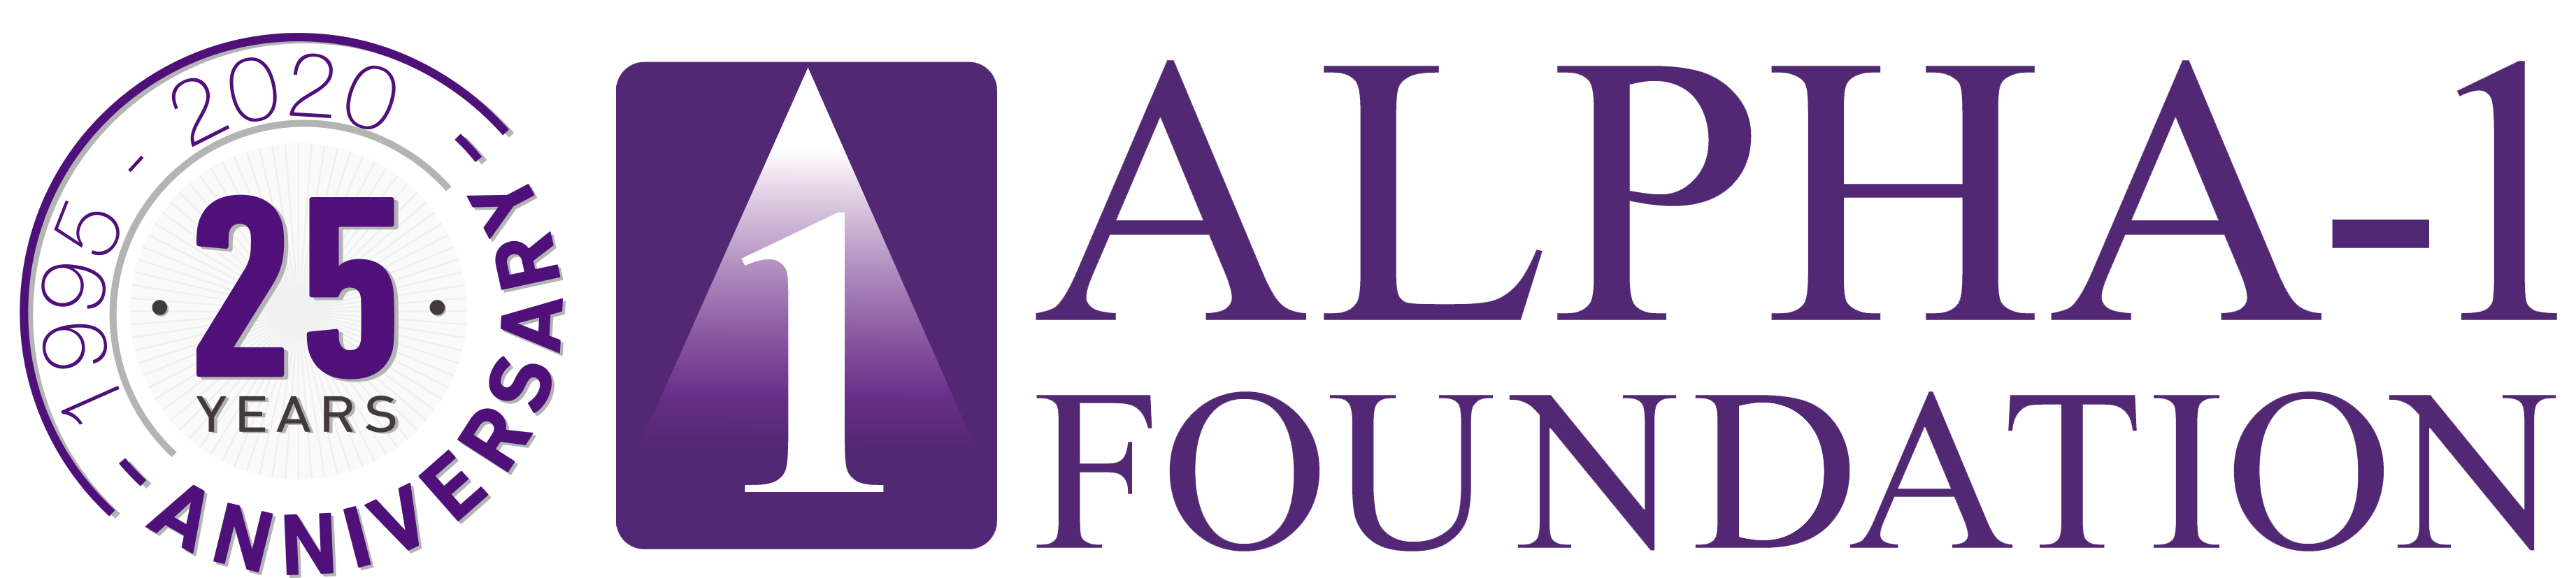 Alpha 1 Foundation 25th logo